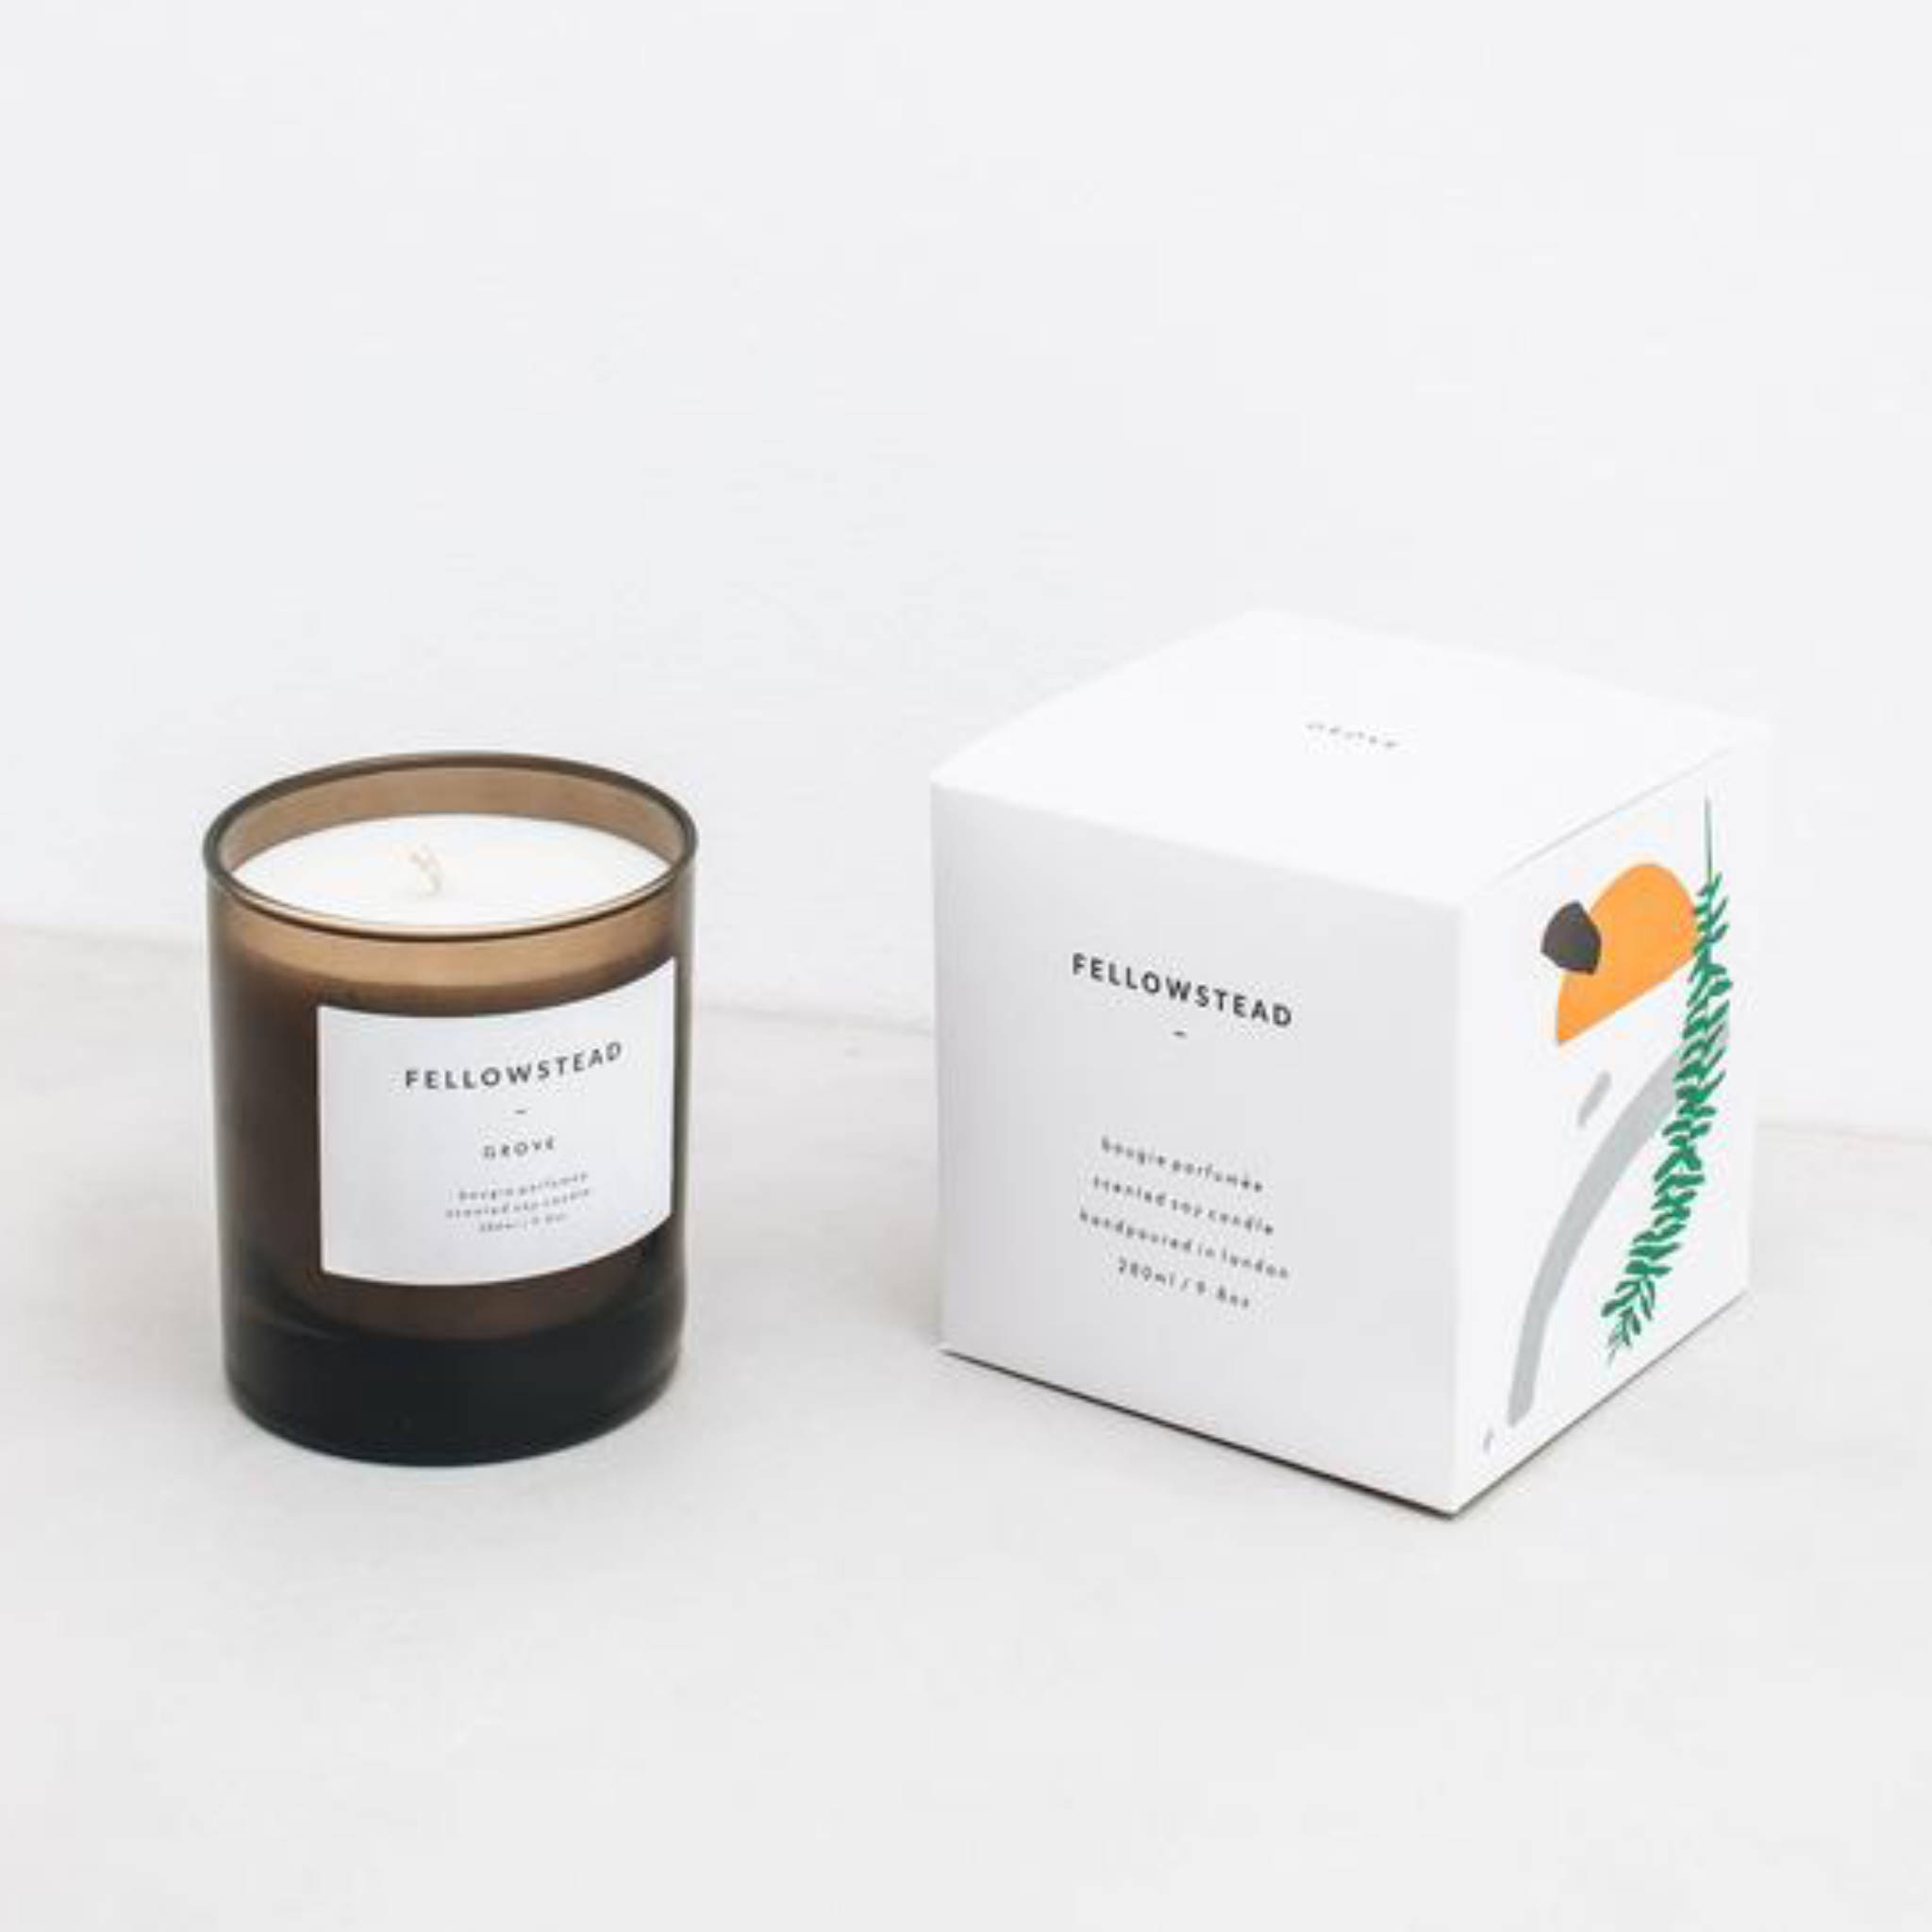 Fellowstead Soy Candle- Grove